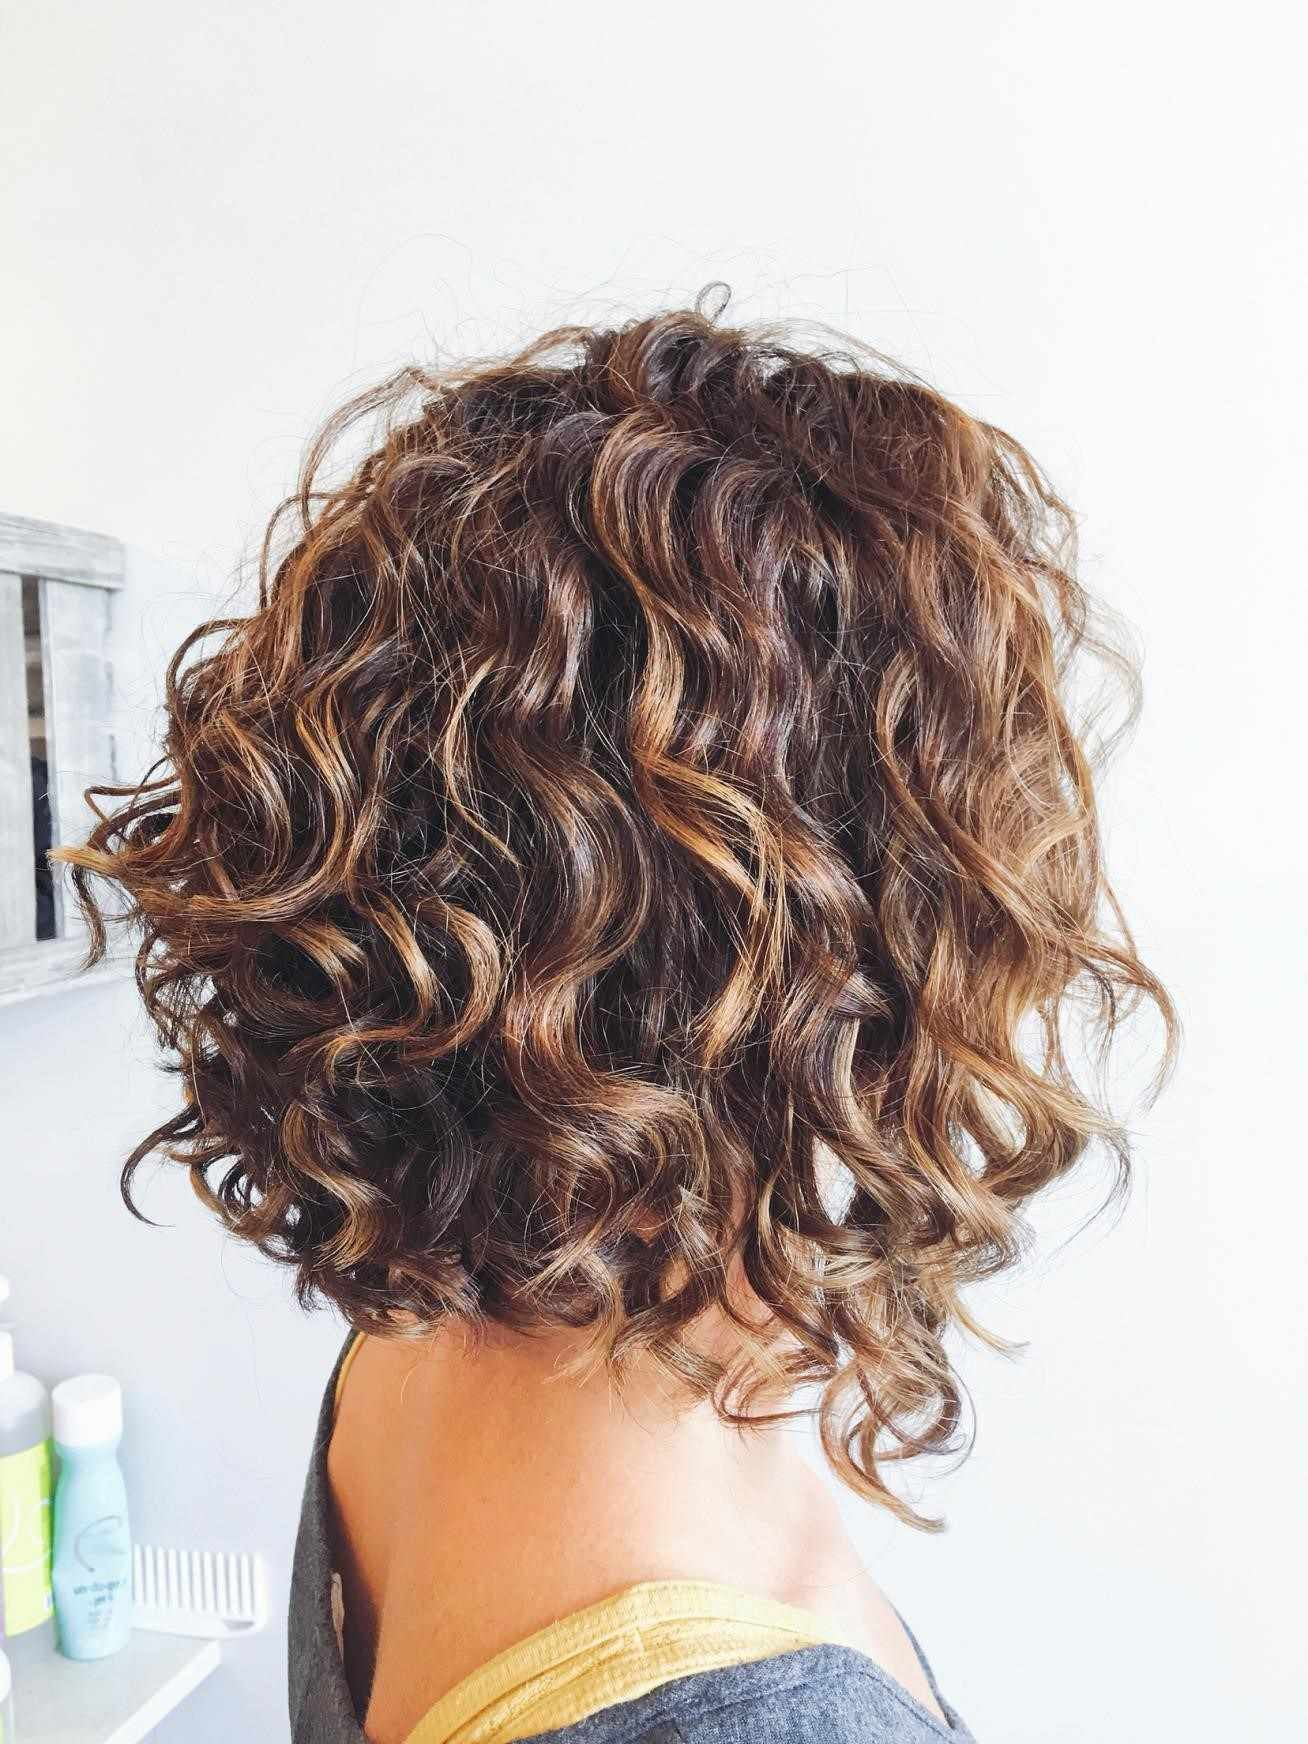 Image Result For Curly Angled Bob Short Permed Hair Curly Hair Styles Haircuts For Curly Hair